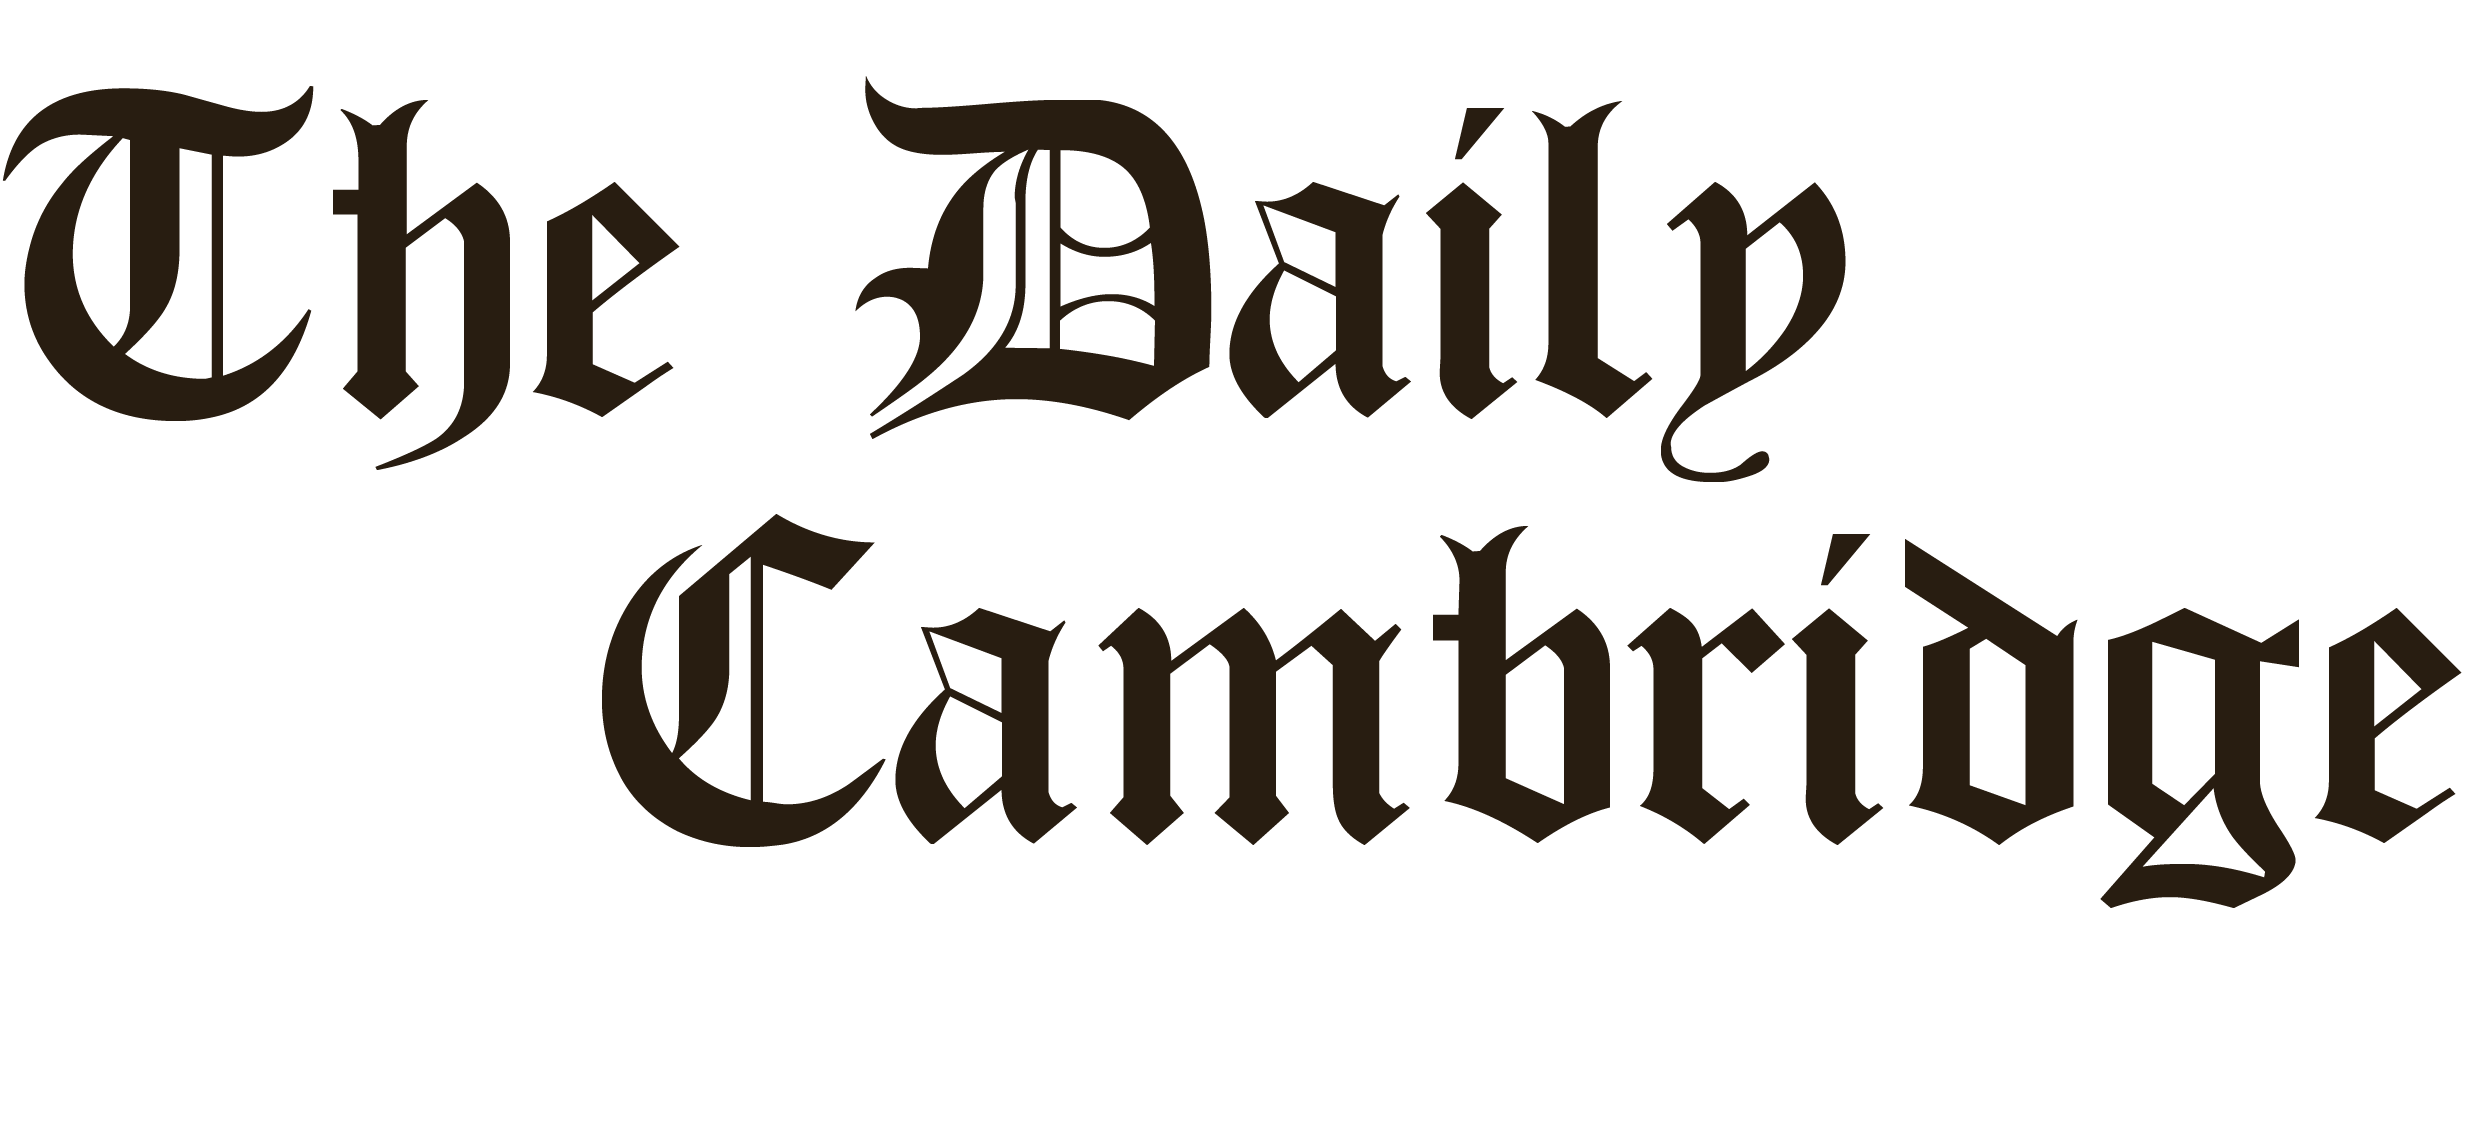 The Daily Cambridge